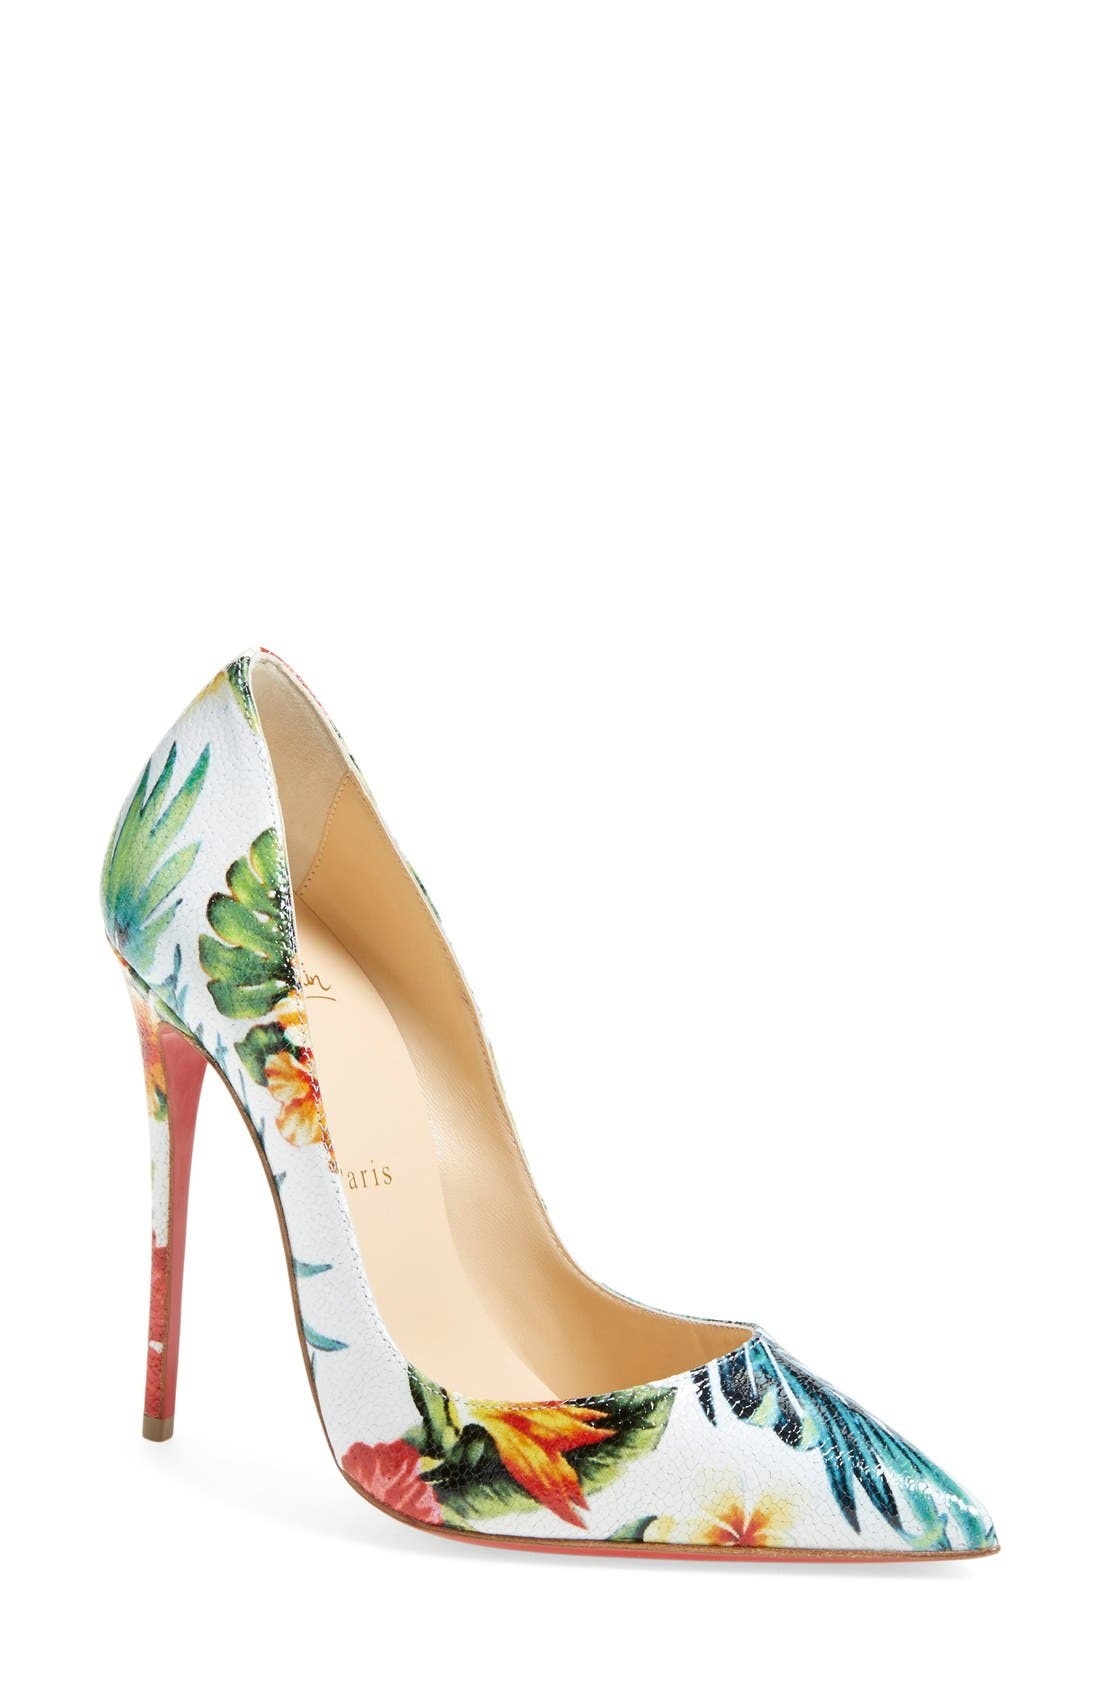 Main Image - Christian Louboutin 'So Kate - Hawaii' Print Pointy Toe Pump (Women)